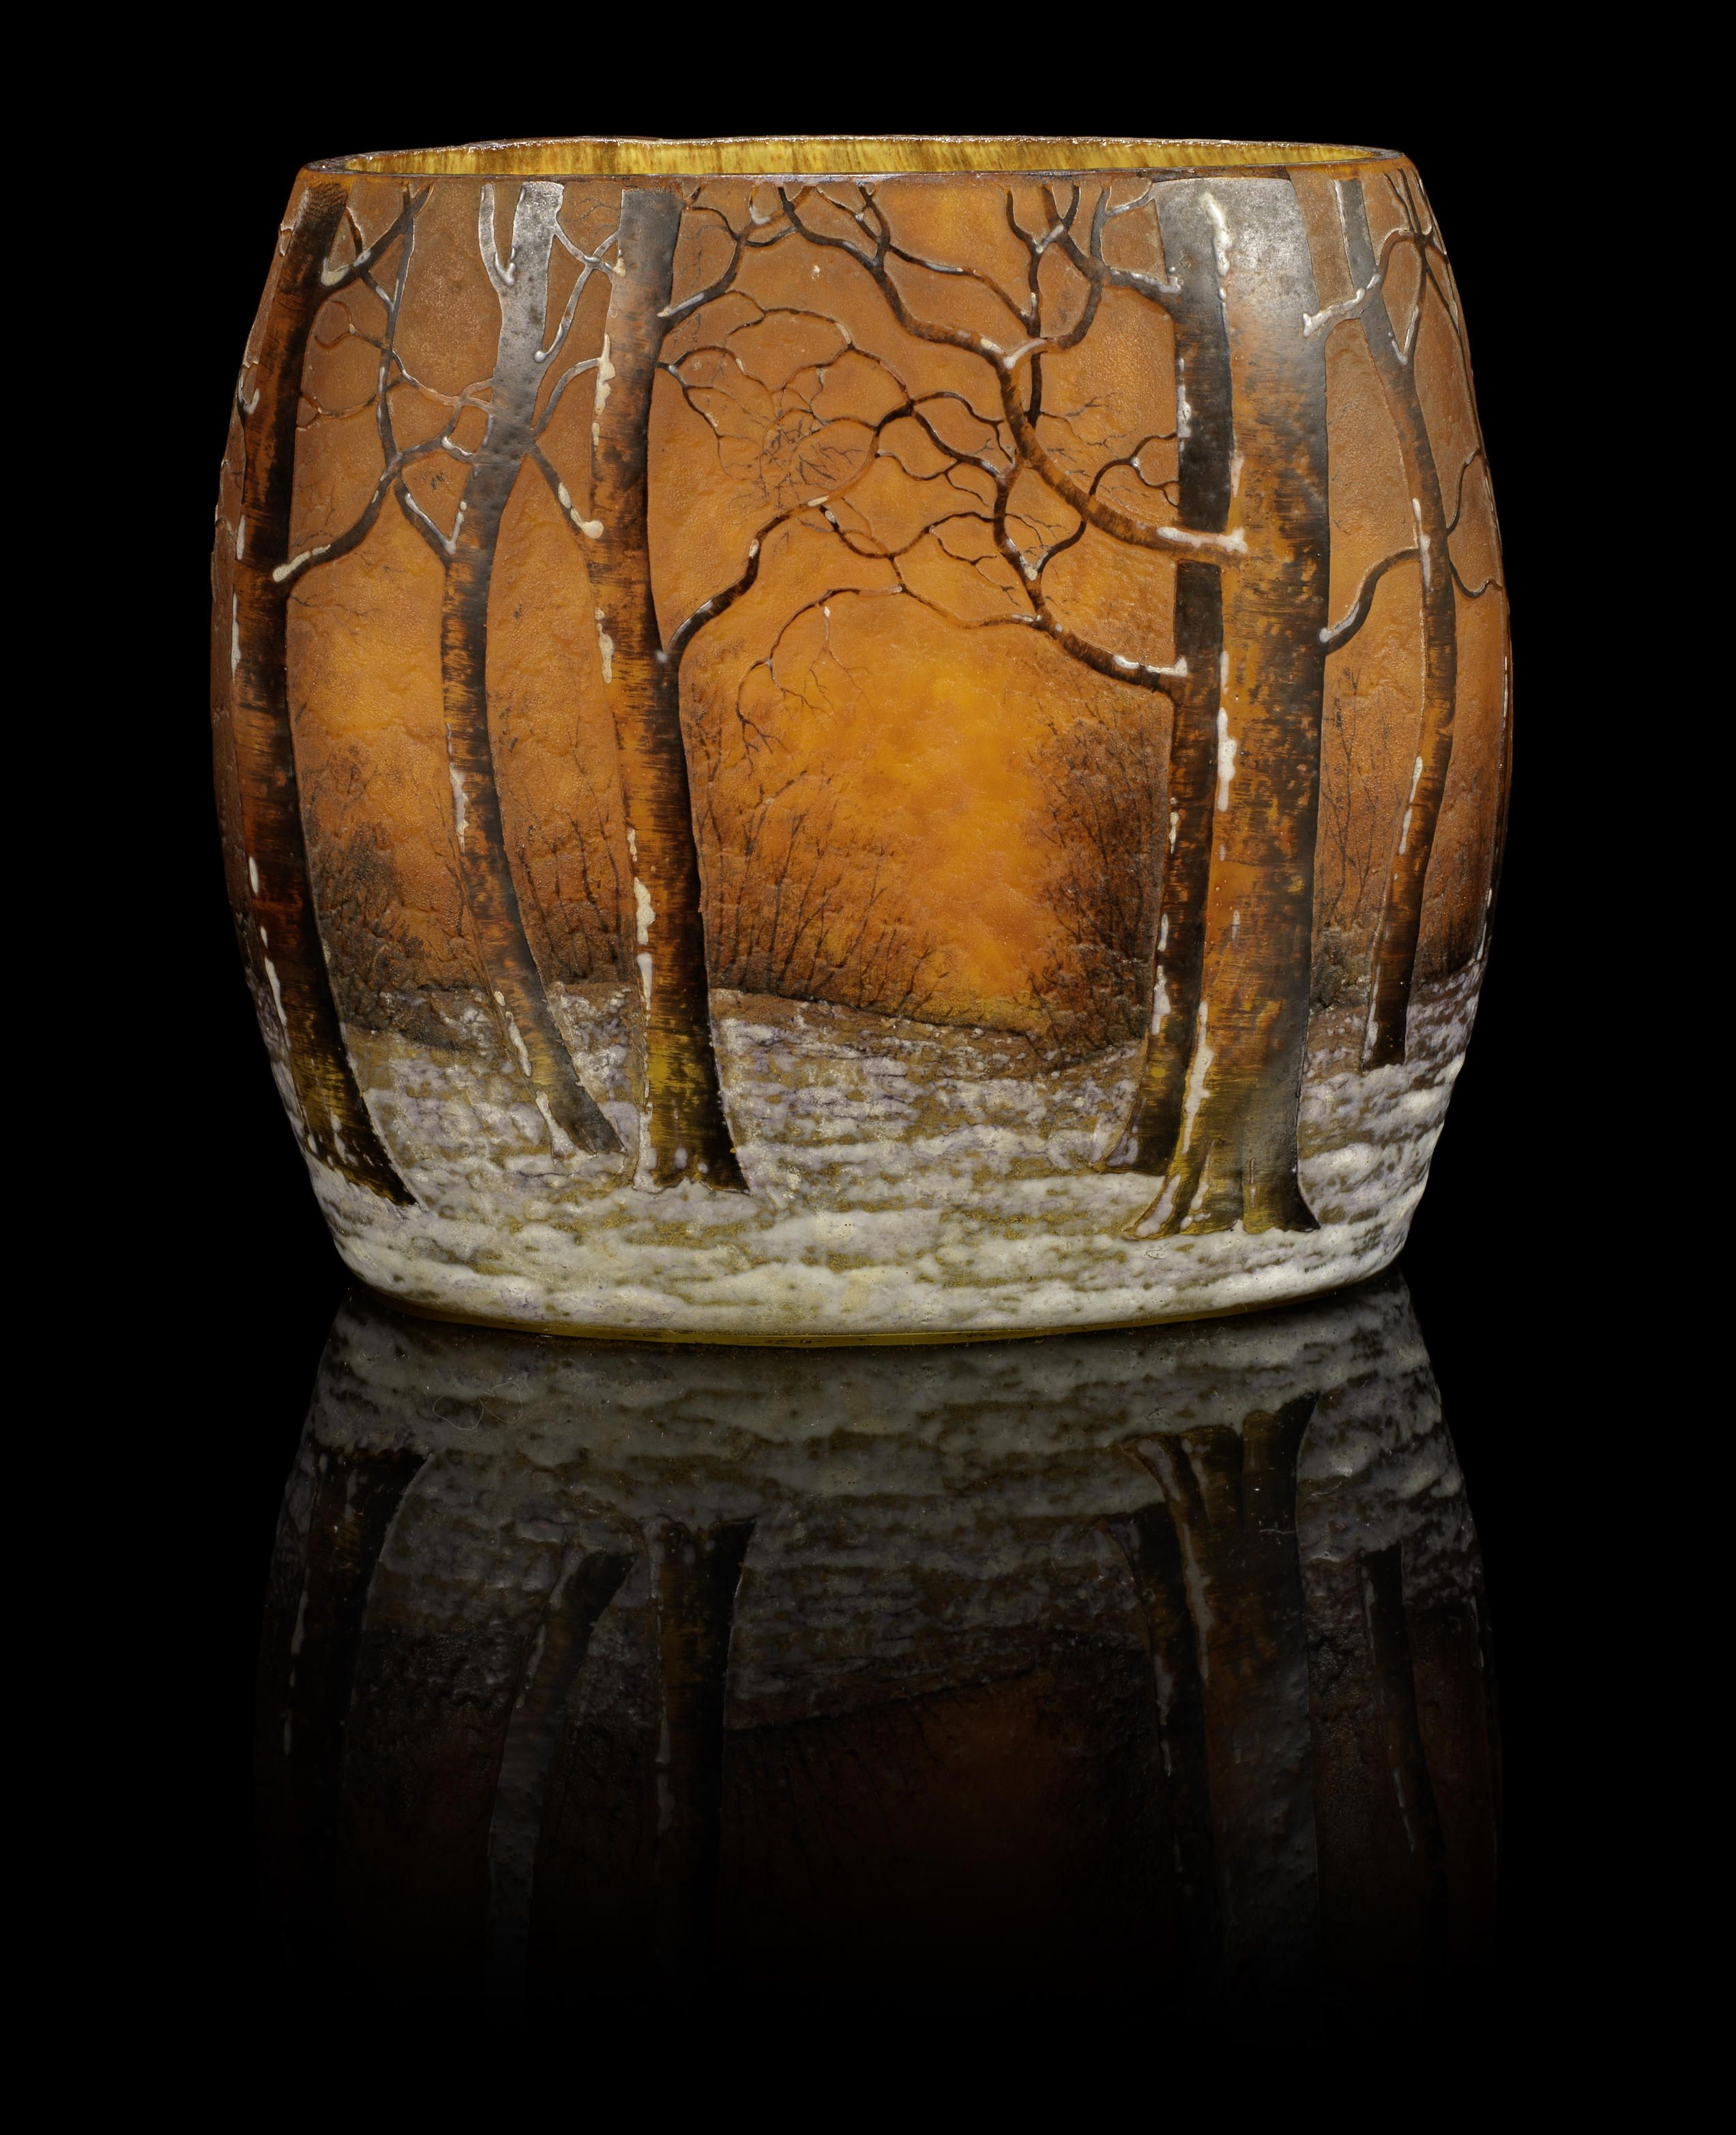 Daum Frères (1878-) 'Arbres en hiver' a 'Pillow' Vase, circa 1910 internally mottled glass, acid-etched and hand-enamelled 12cm high